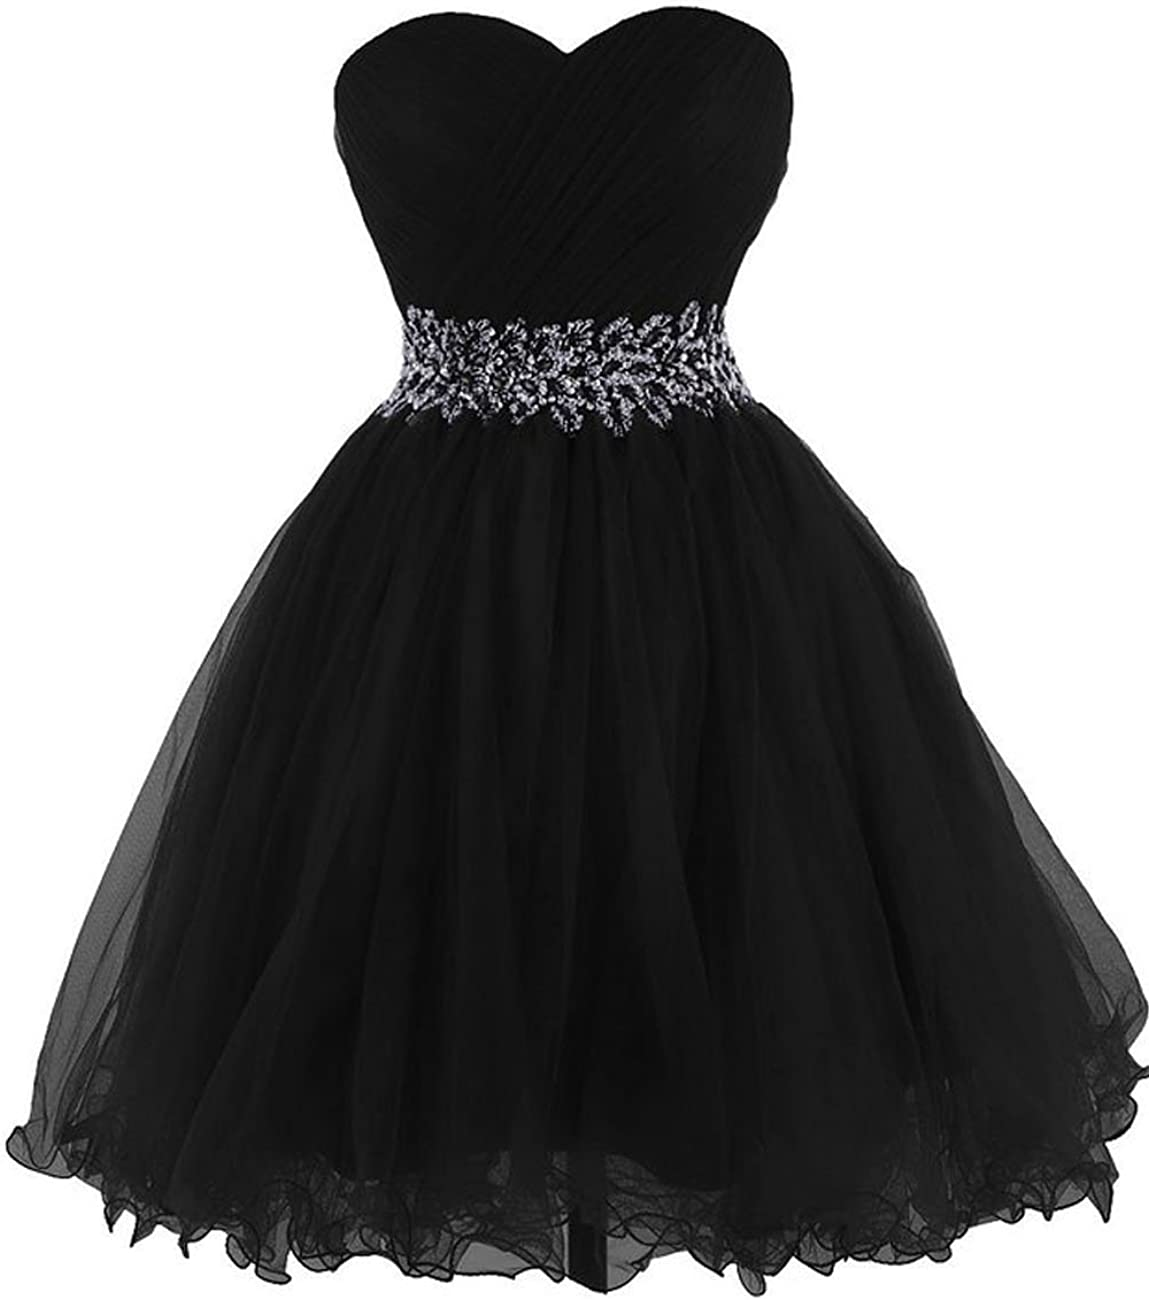 Short Tulle Homecoming Dresses Beaded Prom Cocktail Gowns Sweetheart Junior Party Dress